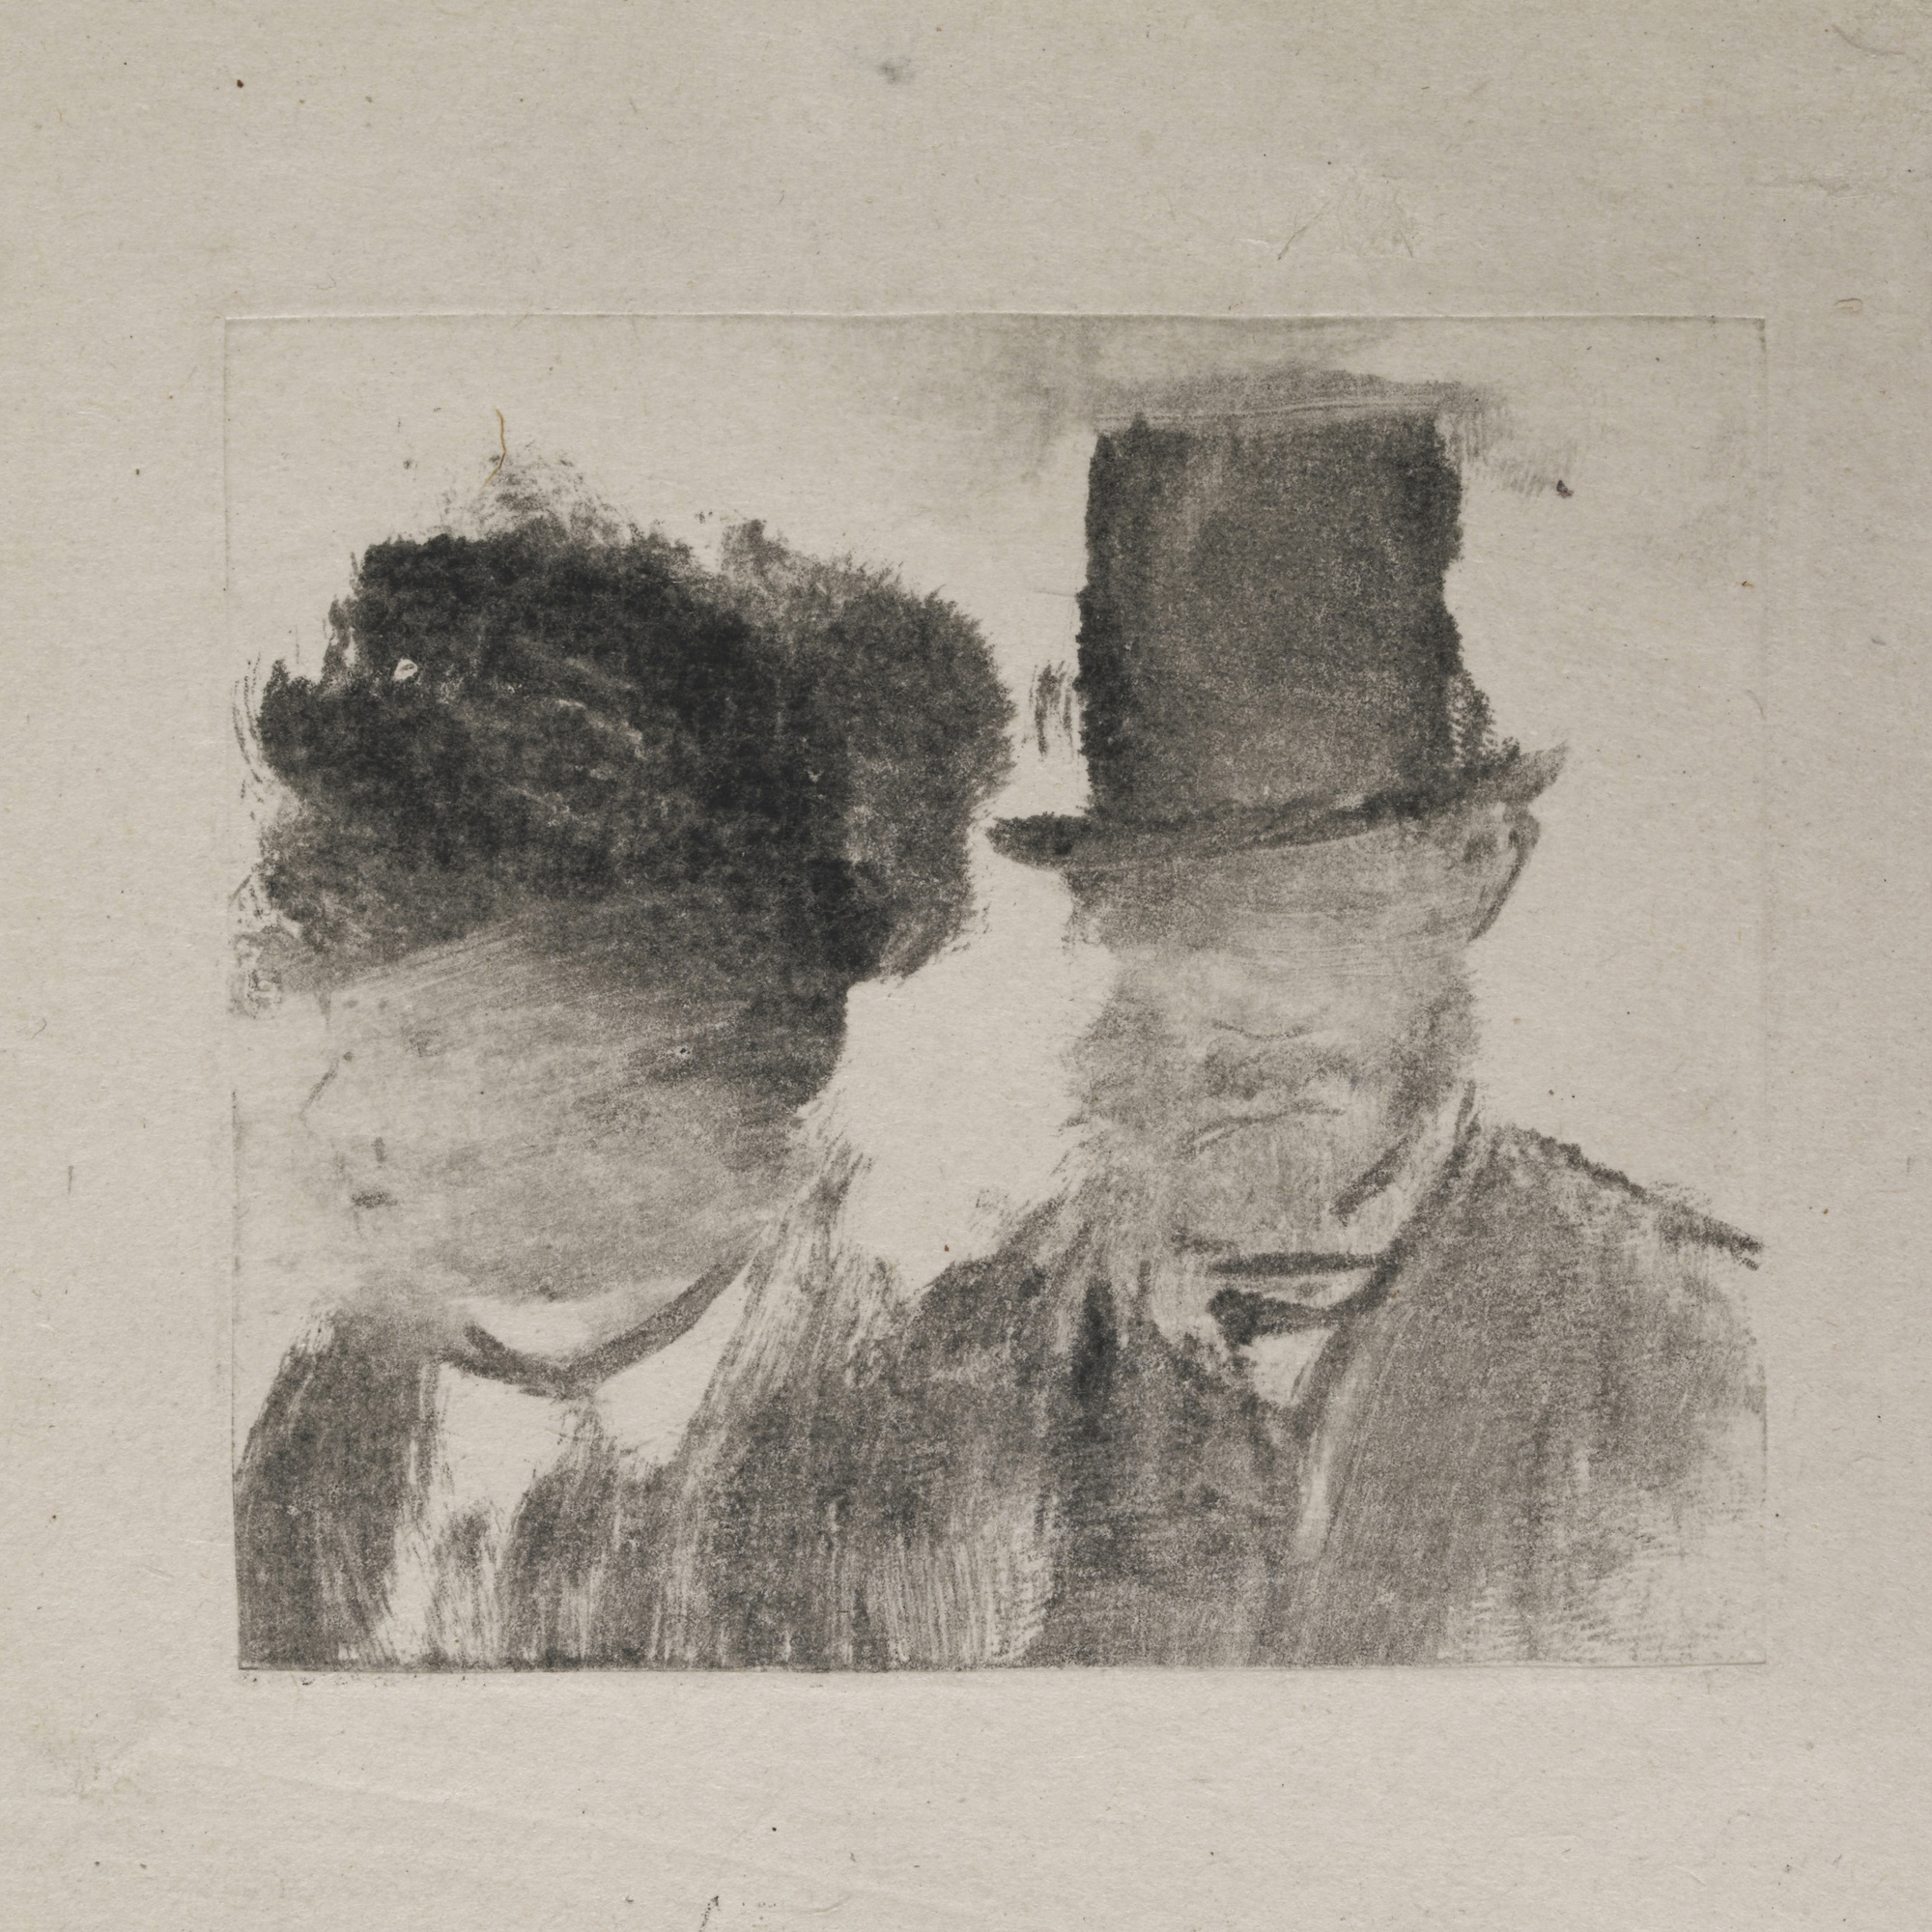 a Degas monotype that looks like an old photograph